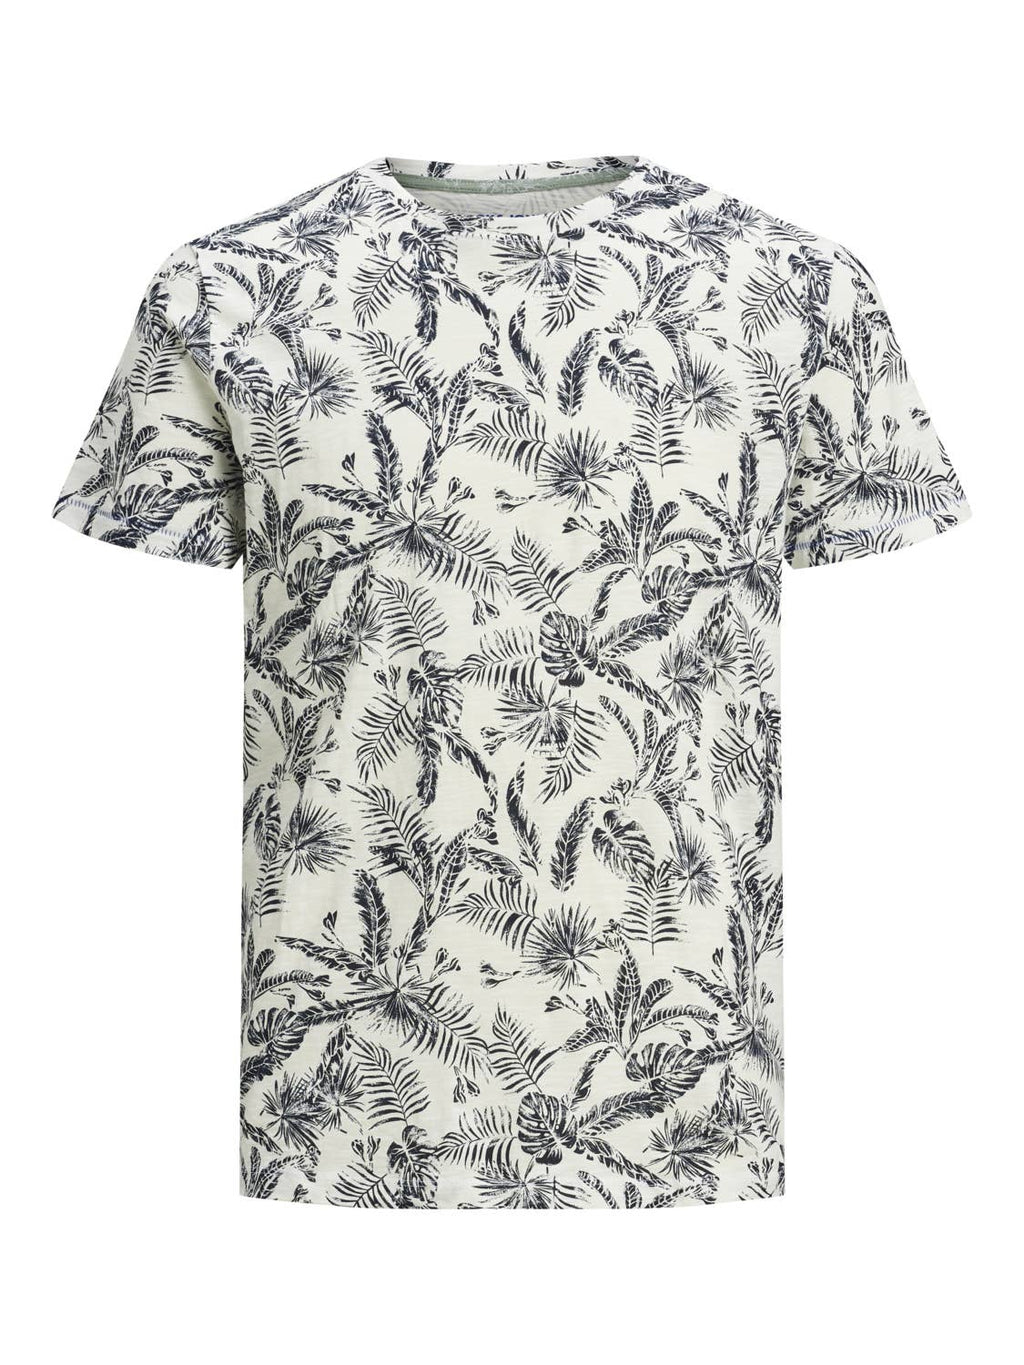 Jack & Jones - Mens Organic All Over Printed Crew Neck Tee Shirt